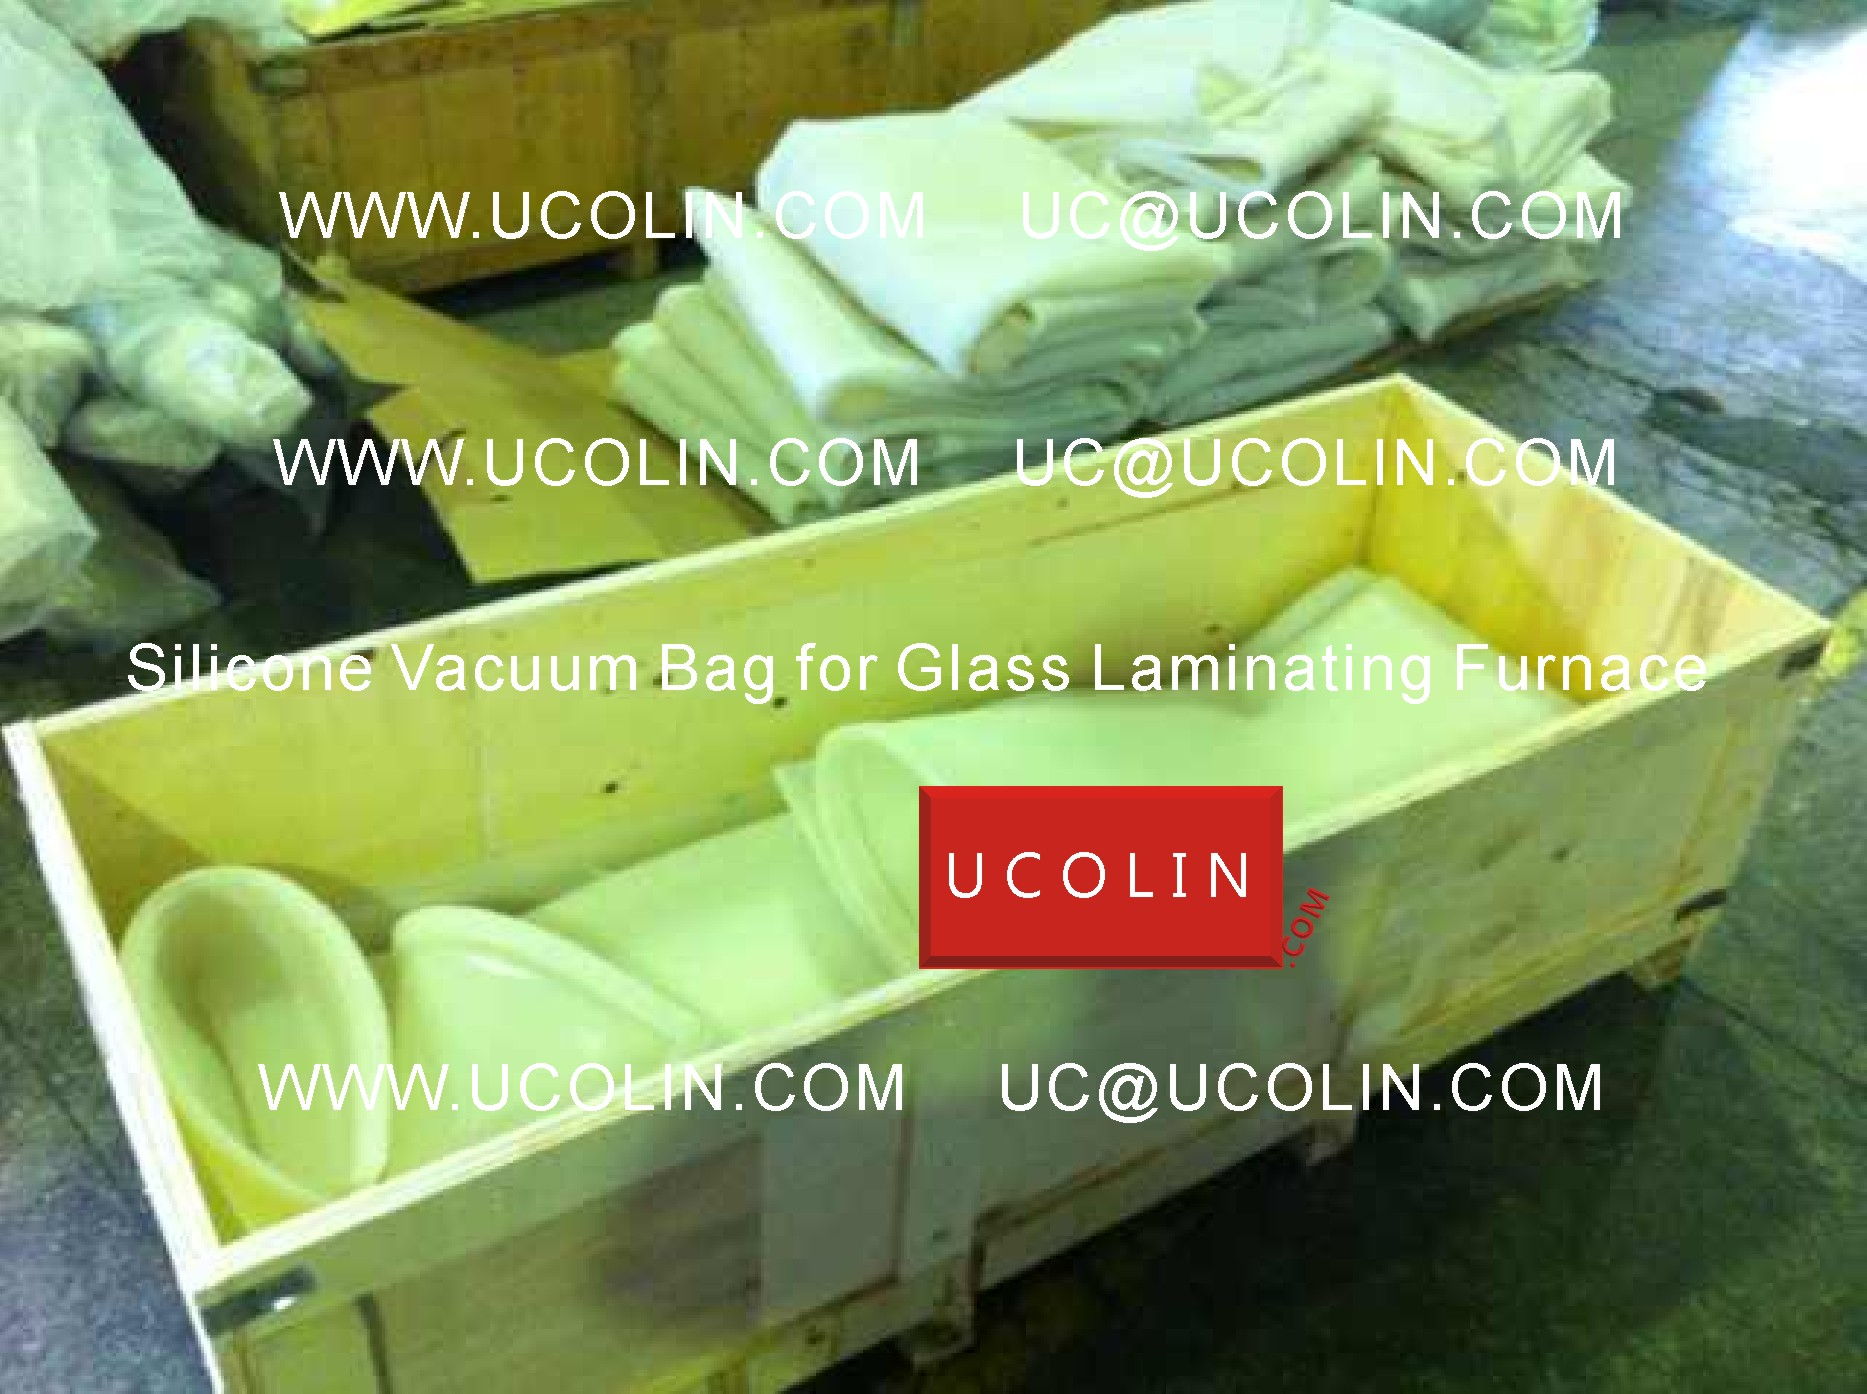 07 2 Producing of Silicone Vacuum Bag for Glass Laminating Furnace